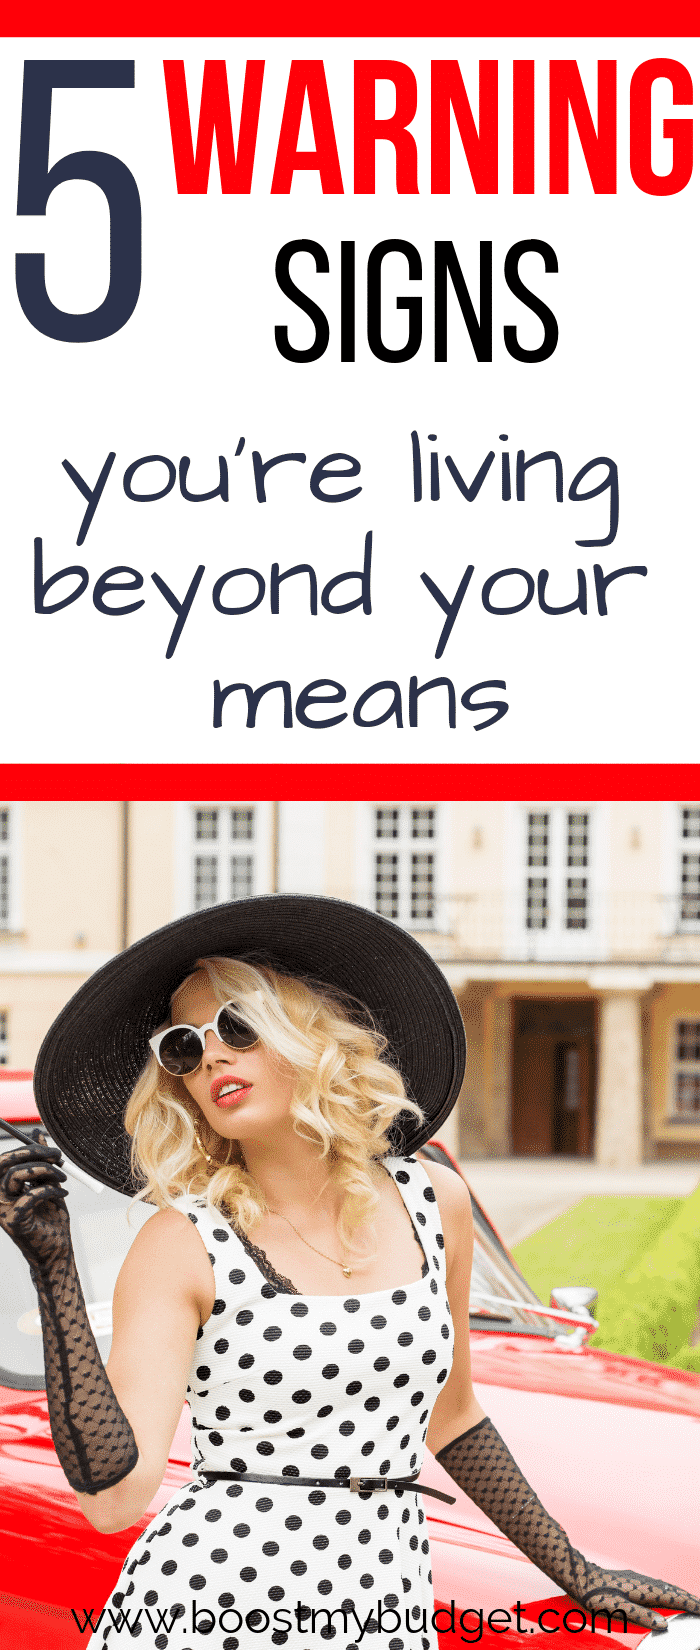 WARNING! Are you living beyond your means? Get to know the signs in this post. This is a must-read for anyone interested in personal finance. If you recognize yourself in this article, it's time to start making more or saving more money, before it's too late!!